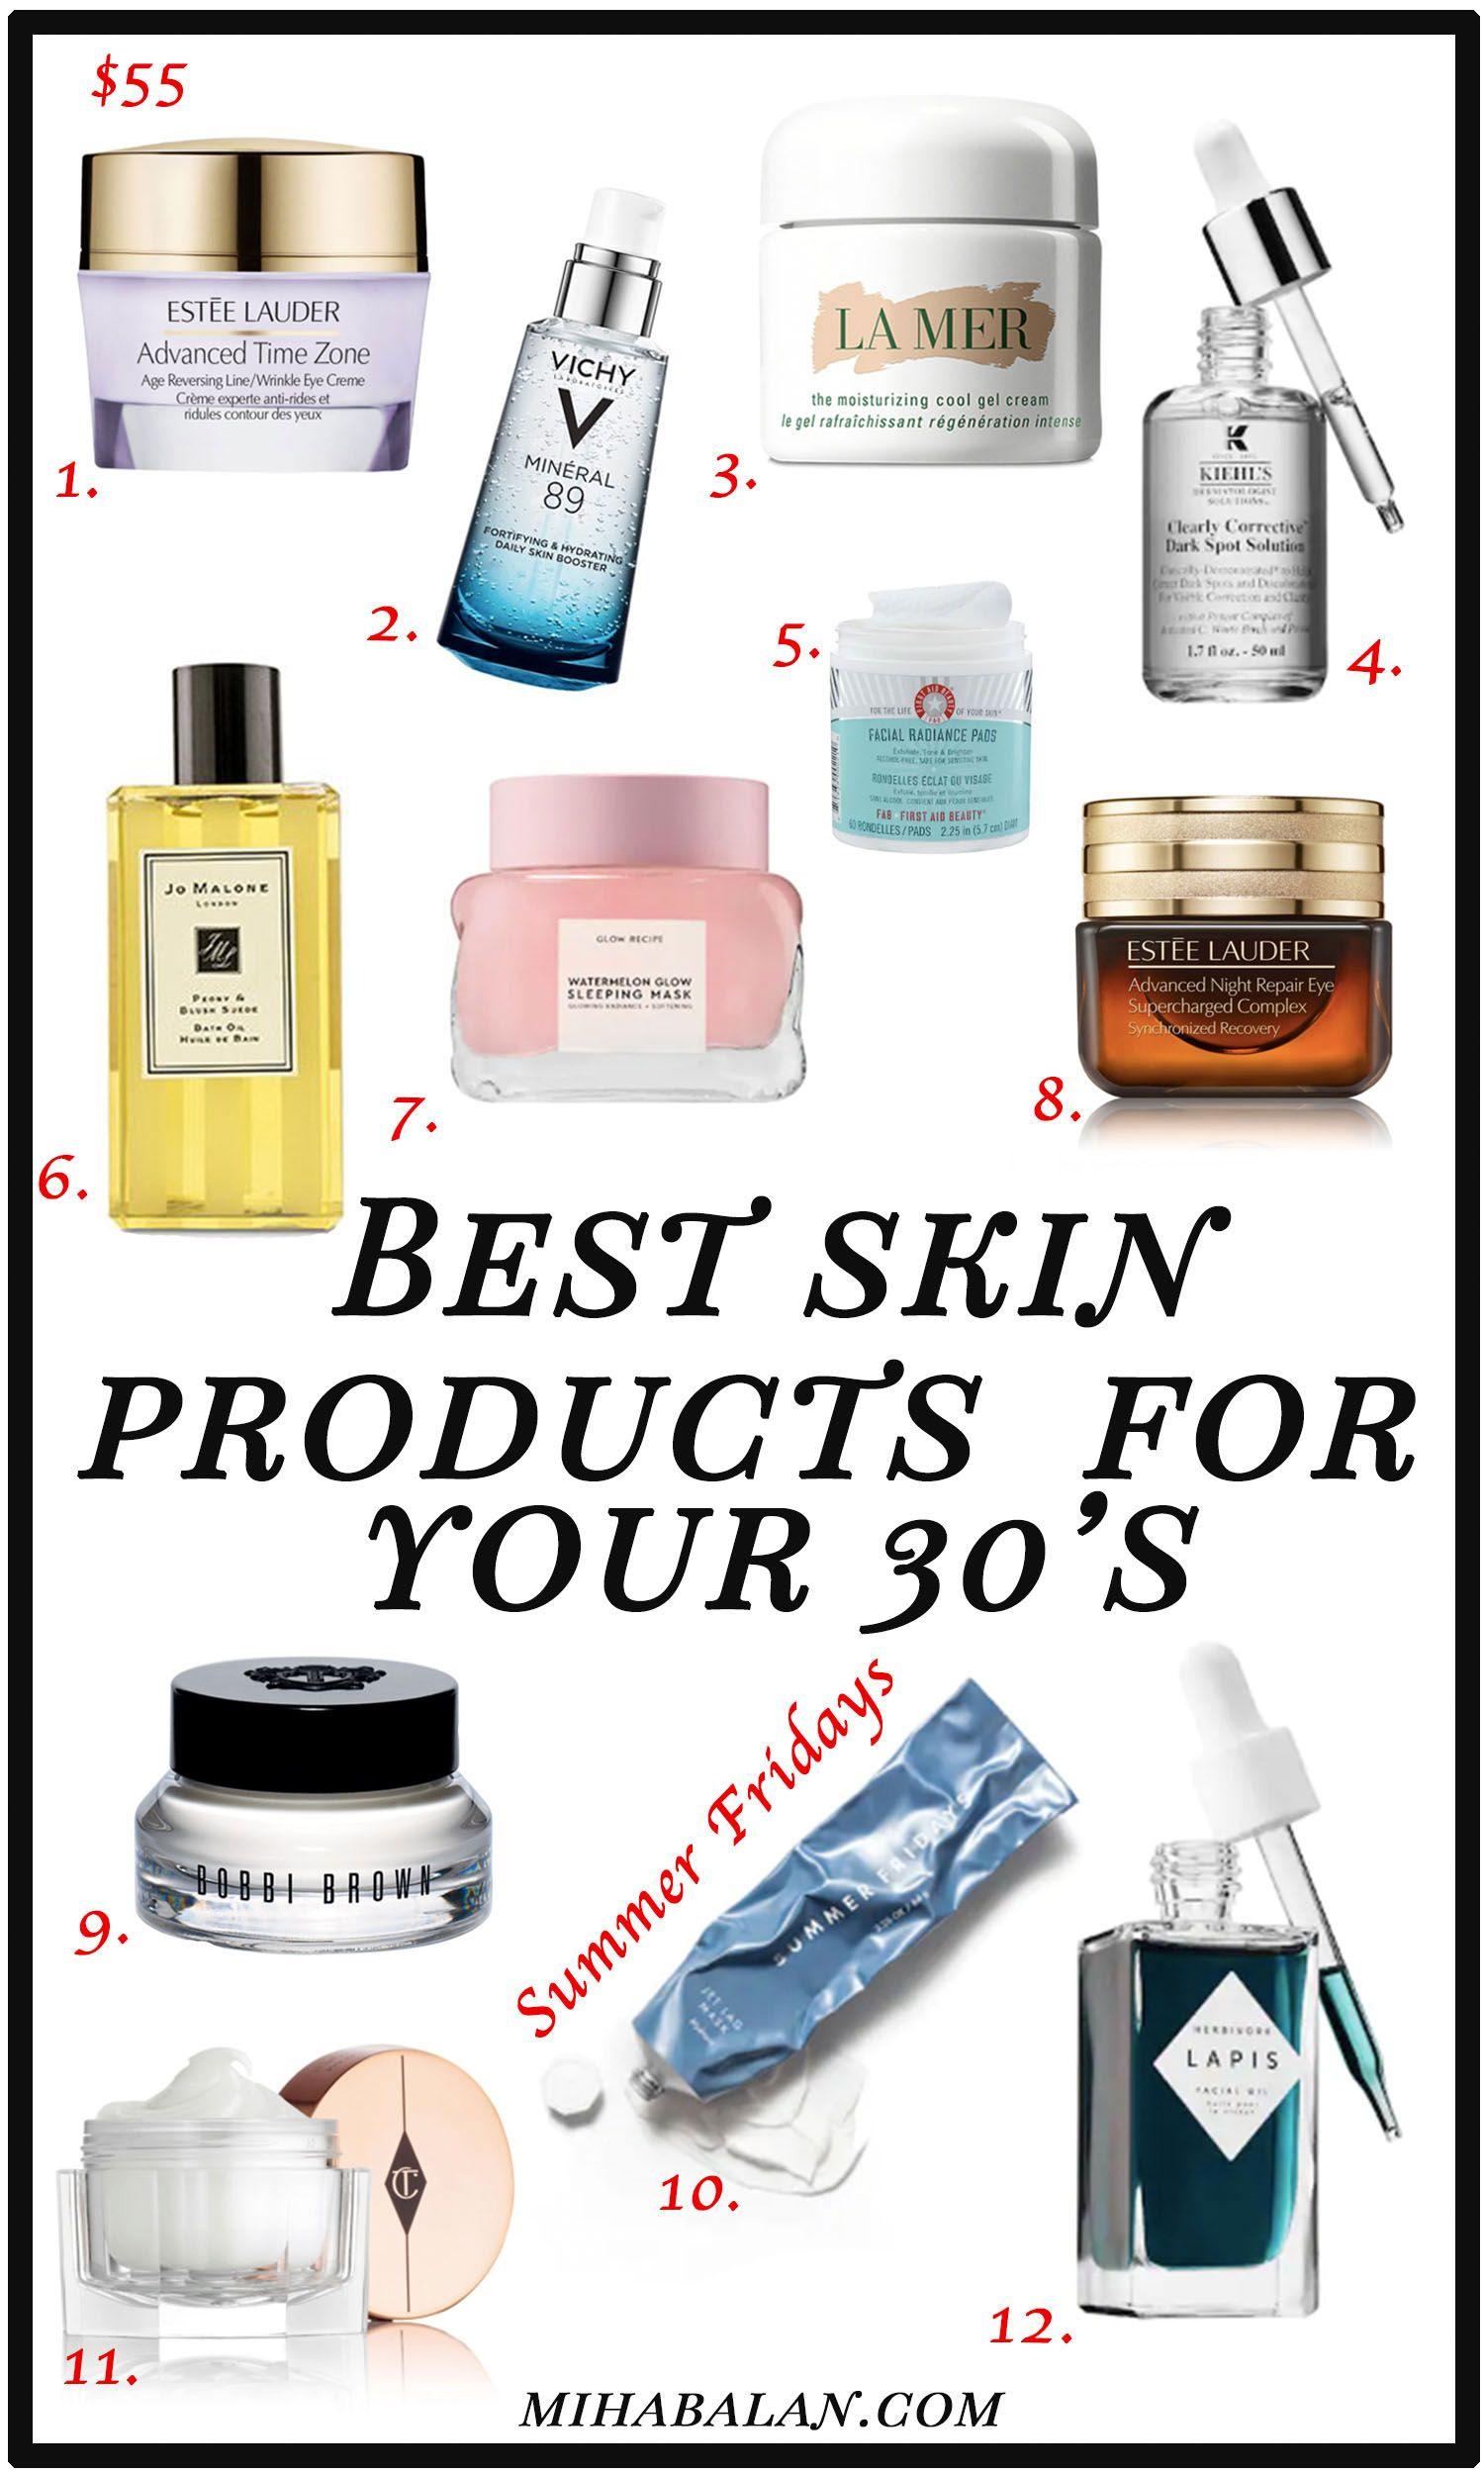 4 Ways To Deal With Your Skin In Your 30 S And The Best Products For It Be You Very Well Good Skin Aging Skin Care Anti Aging Skin Products